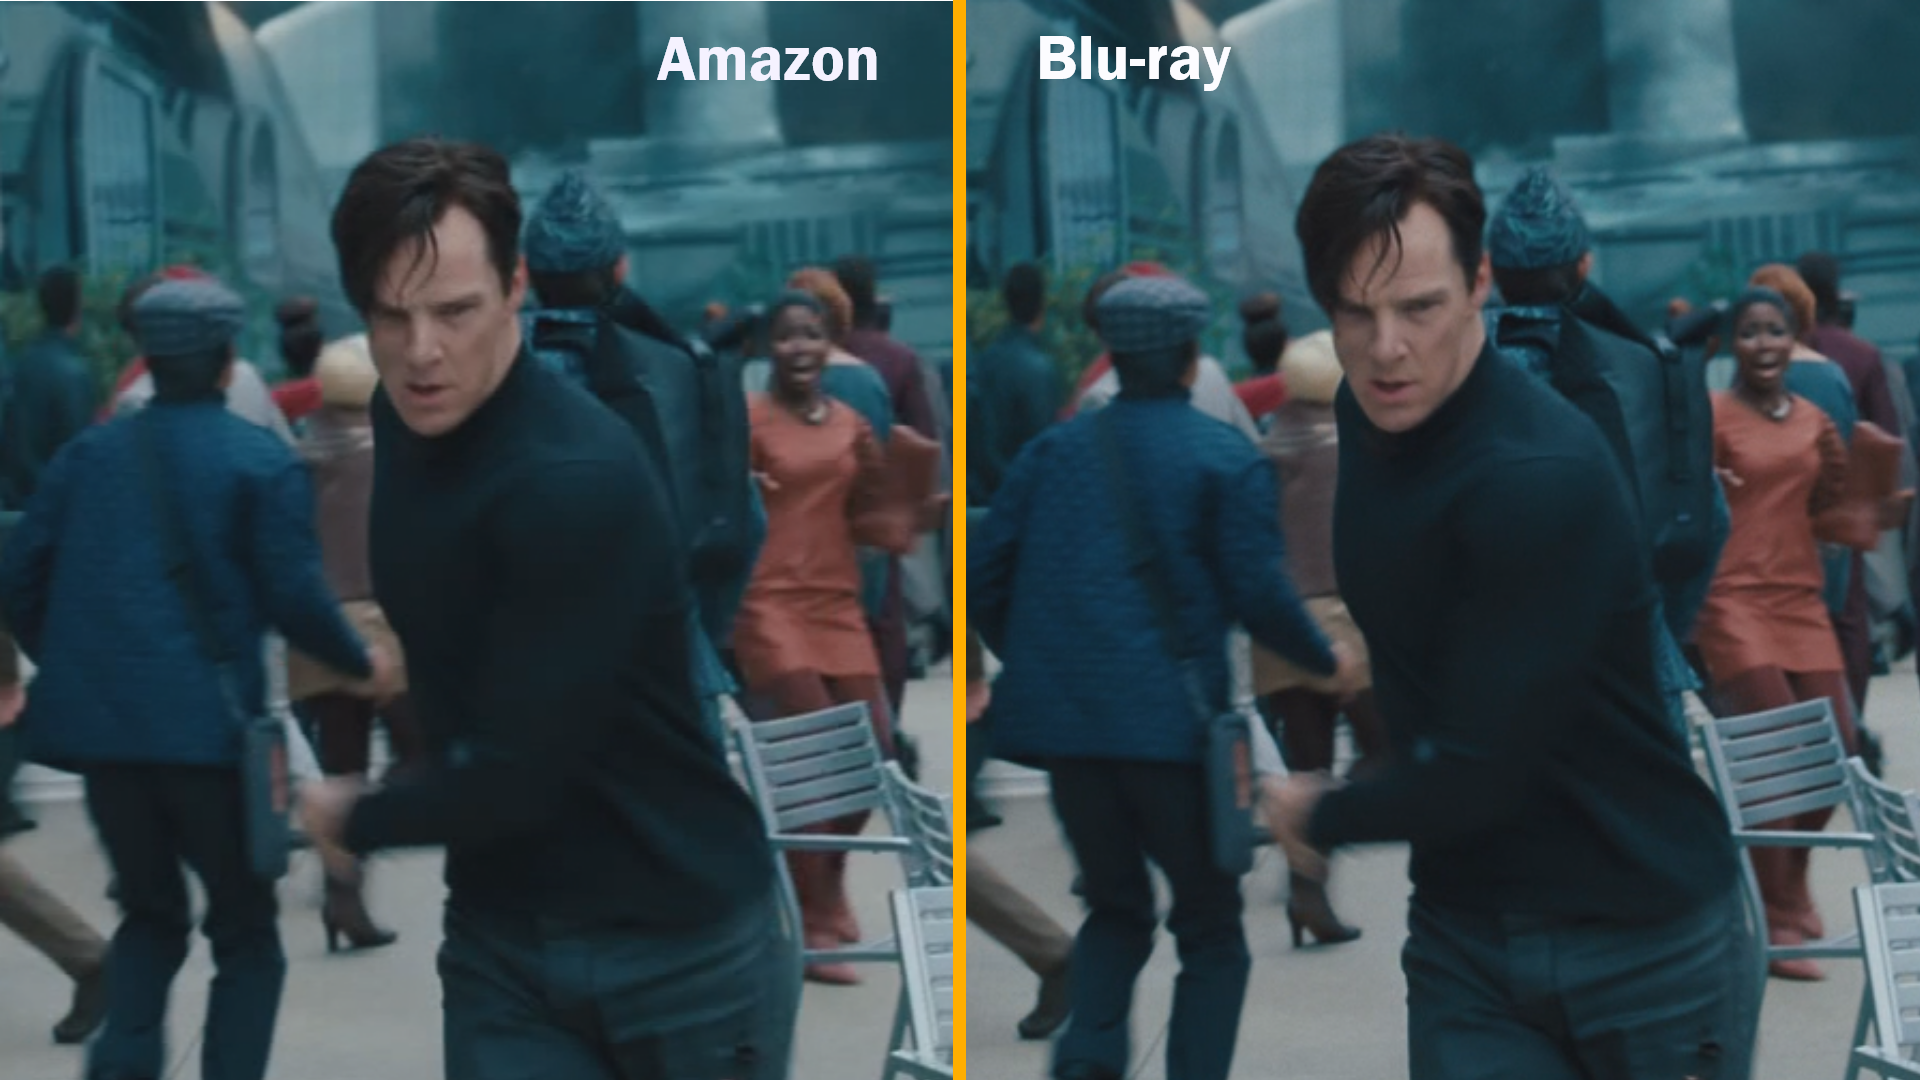 blu ray vs hd dvd Blu-ray vs hd dvd comparison the format war waging between hd-dvd and blu-ray to be the dominant media standard for content in high definition has effectively ended with blu-ray emerging.